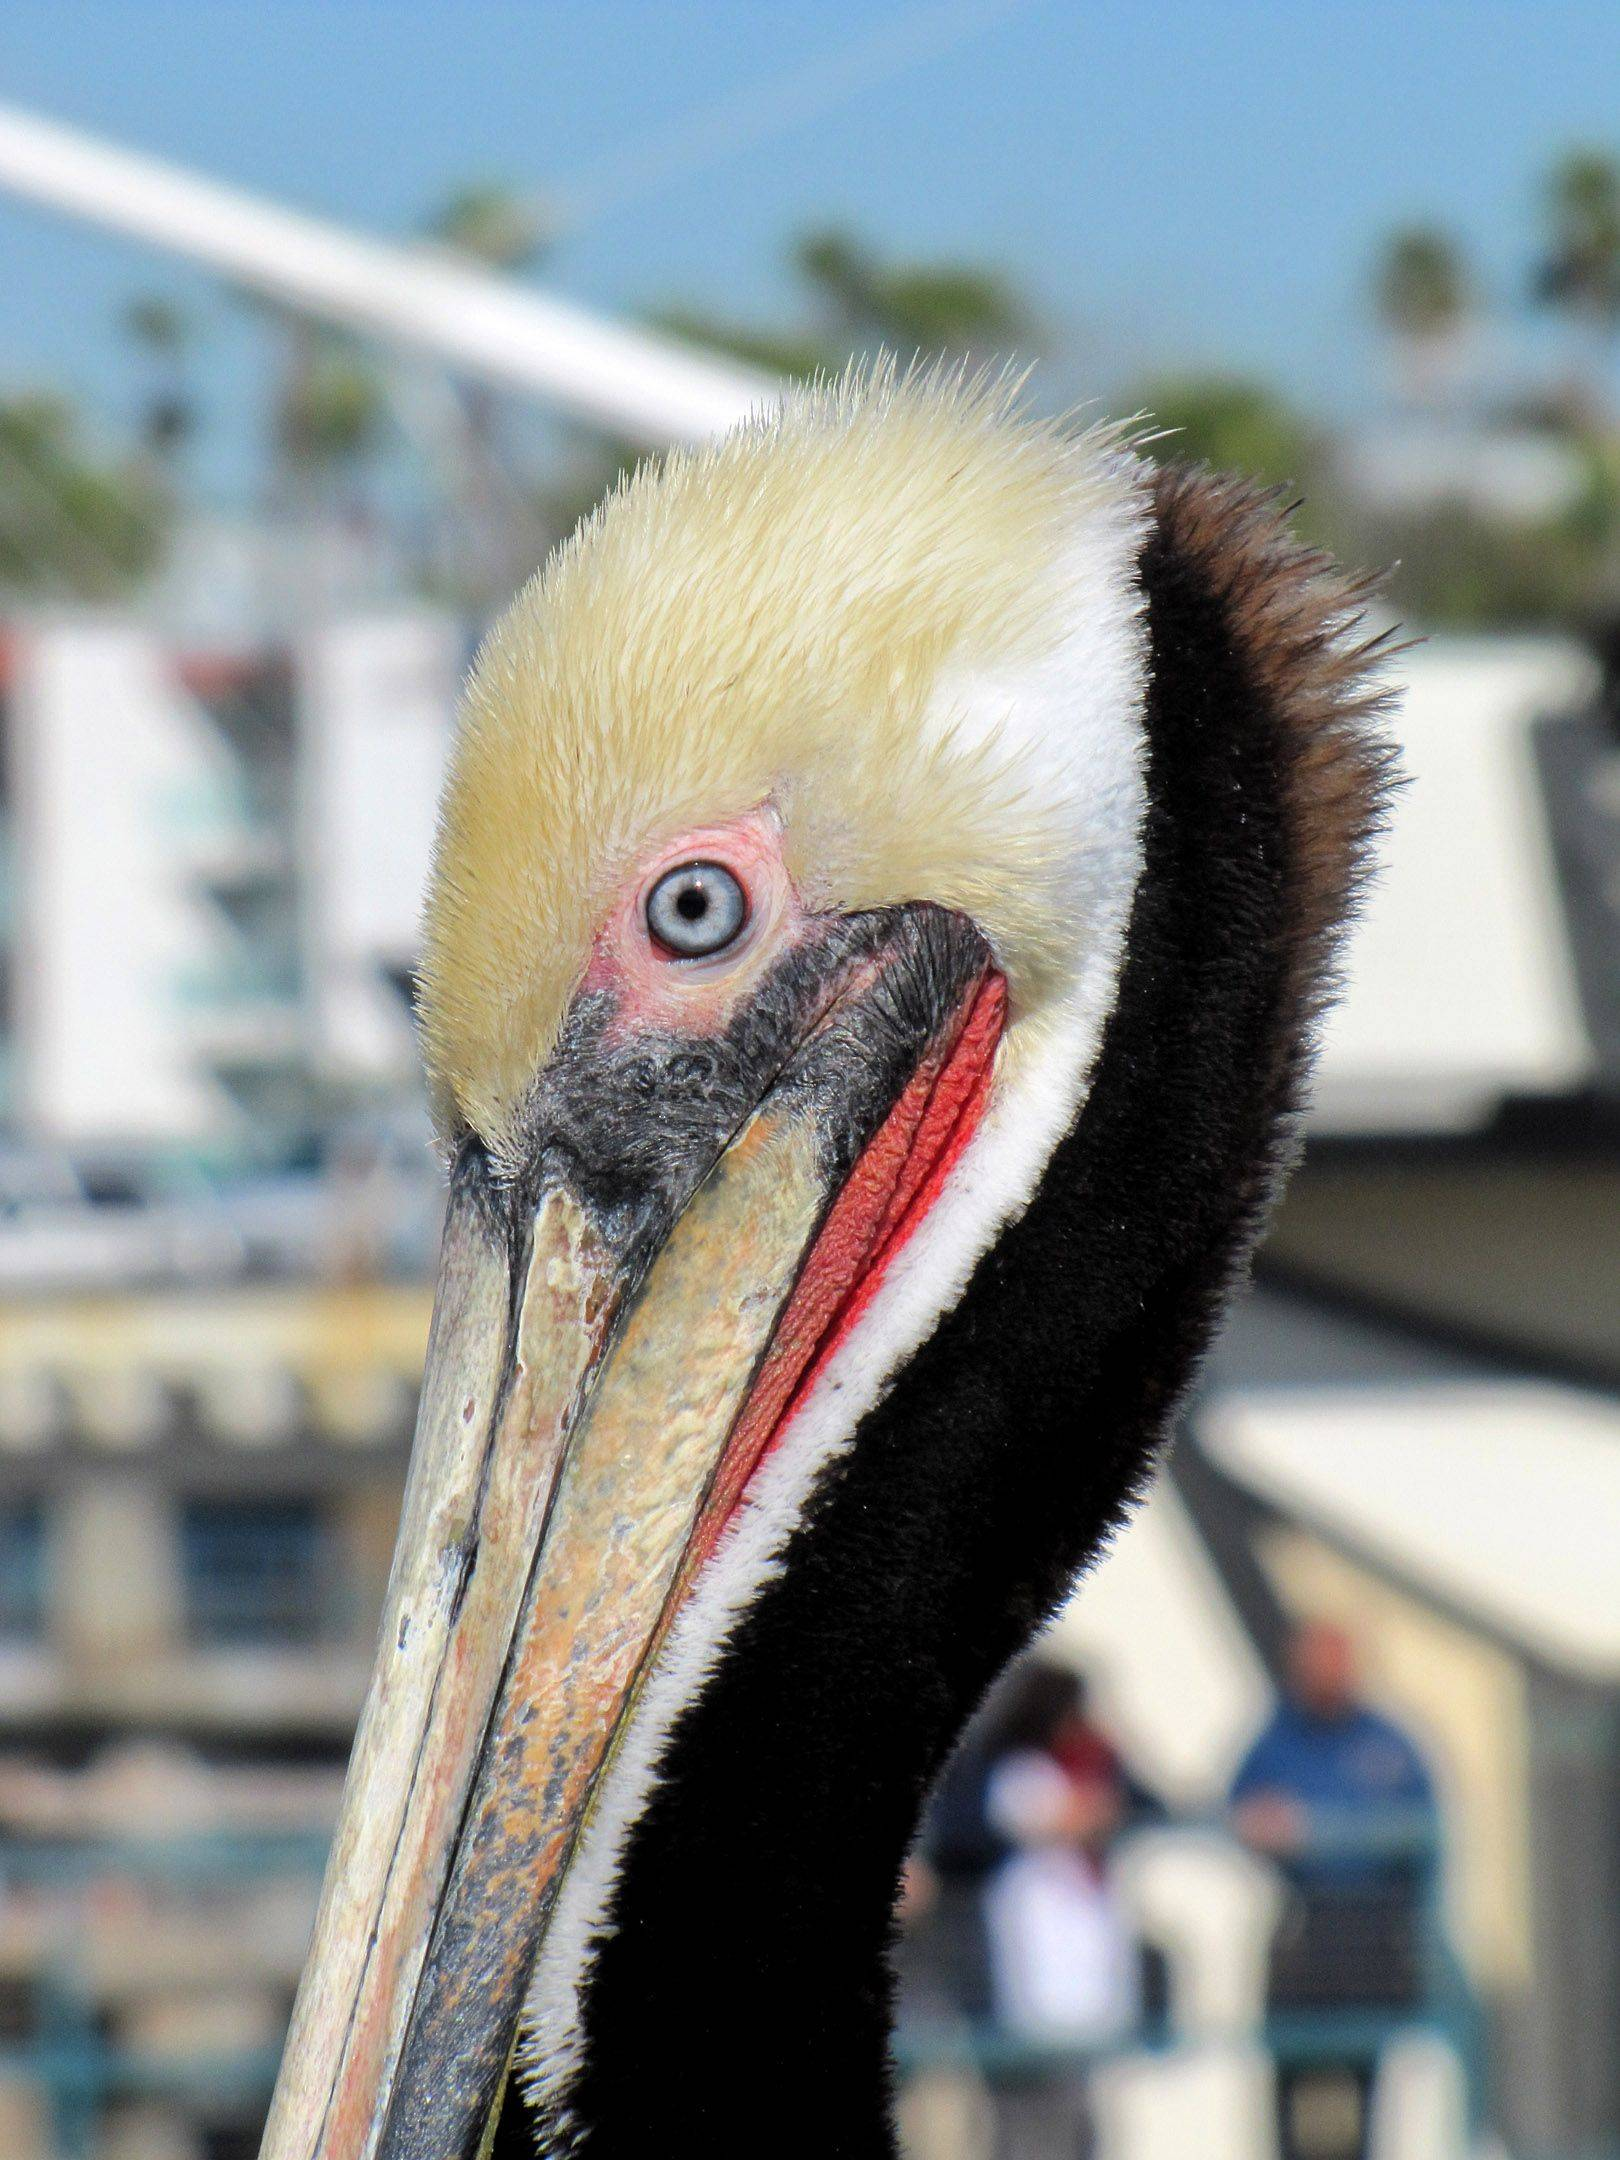 The colors on this brown pelican are striking as he waits for hand outs on the pier in Redondo Beach, CA.